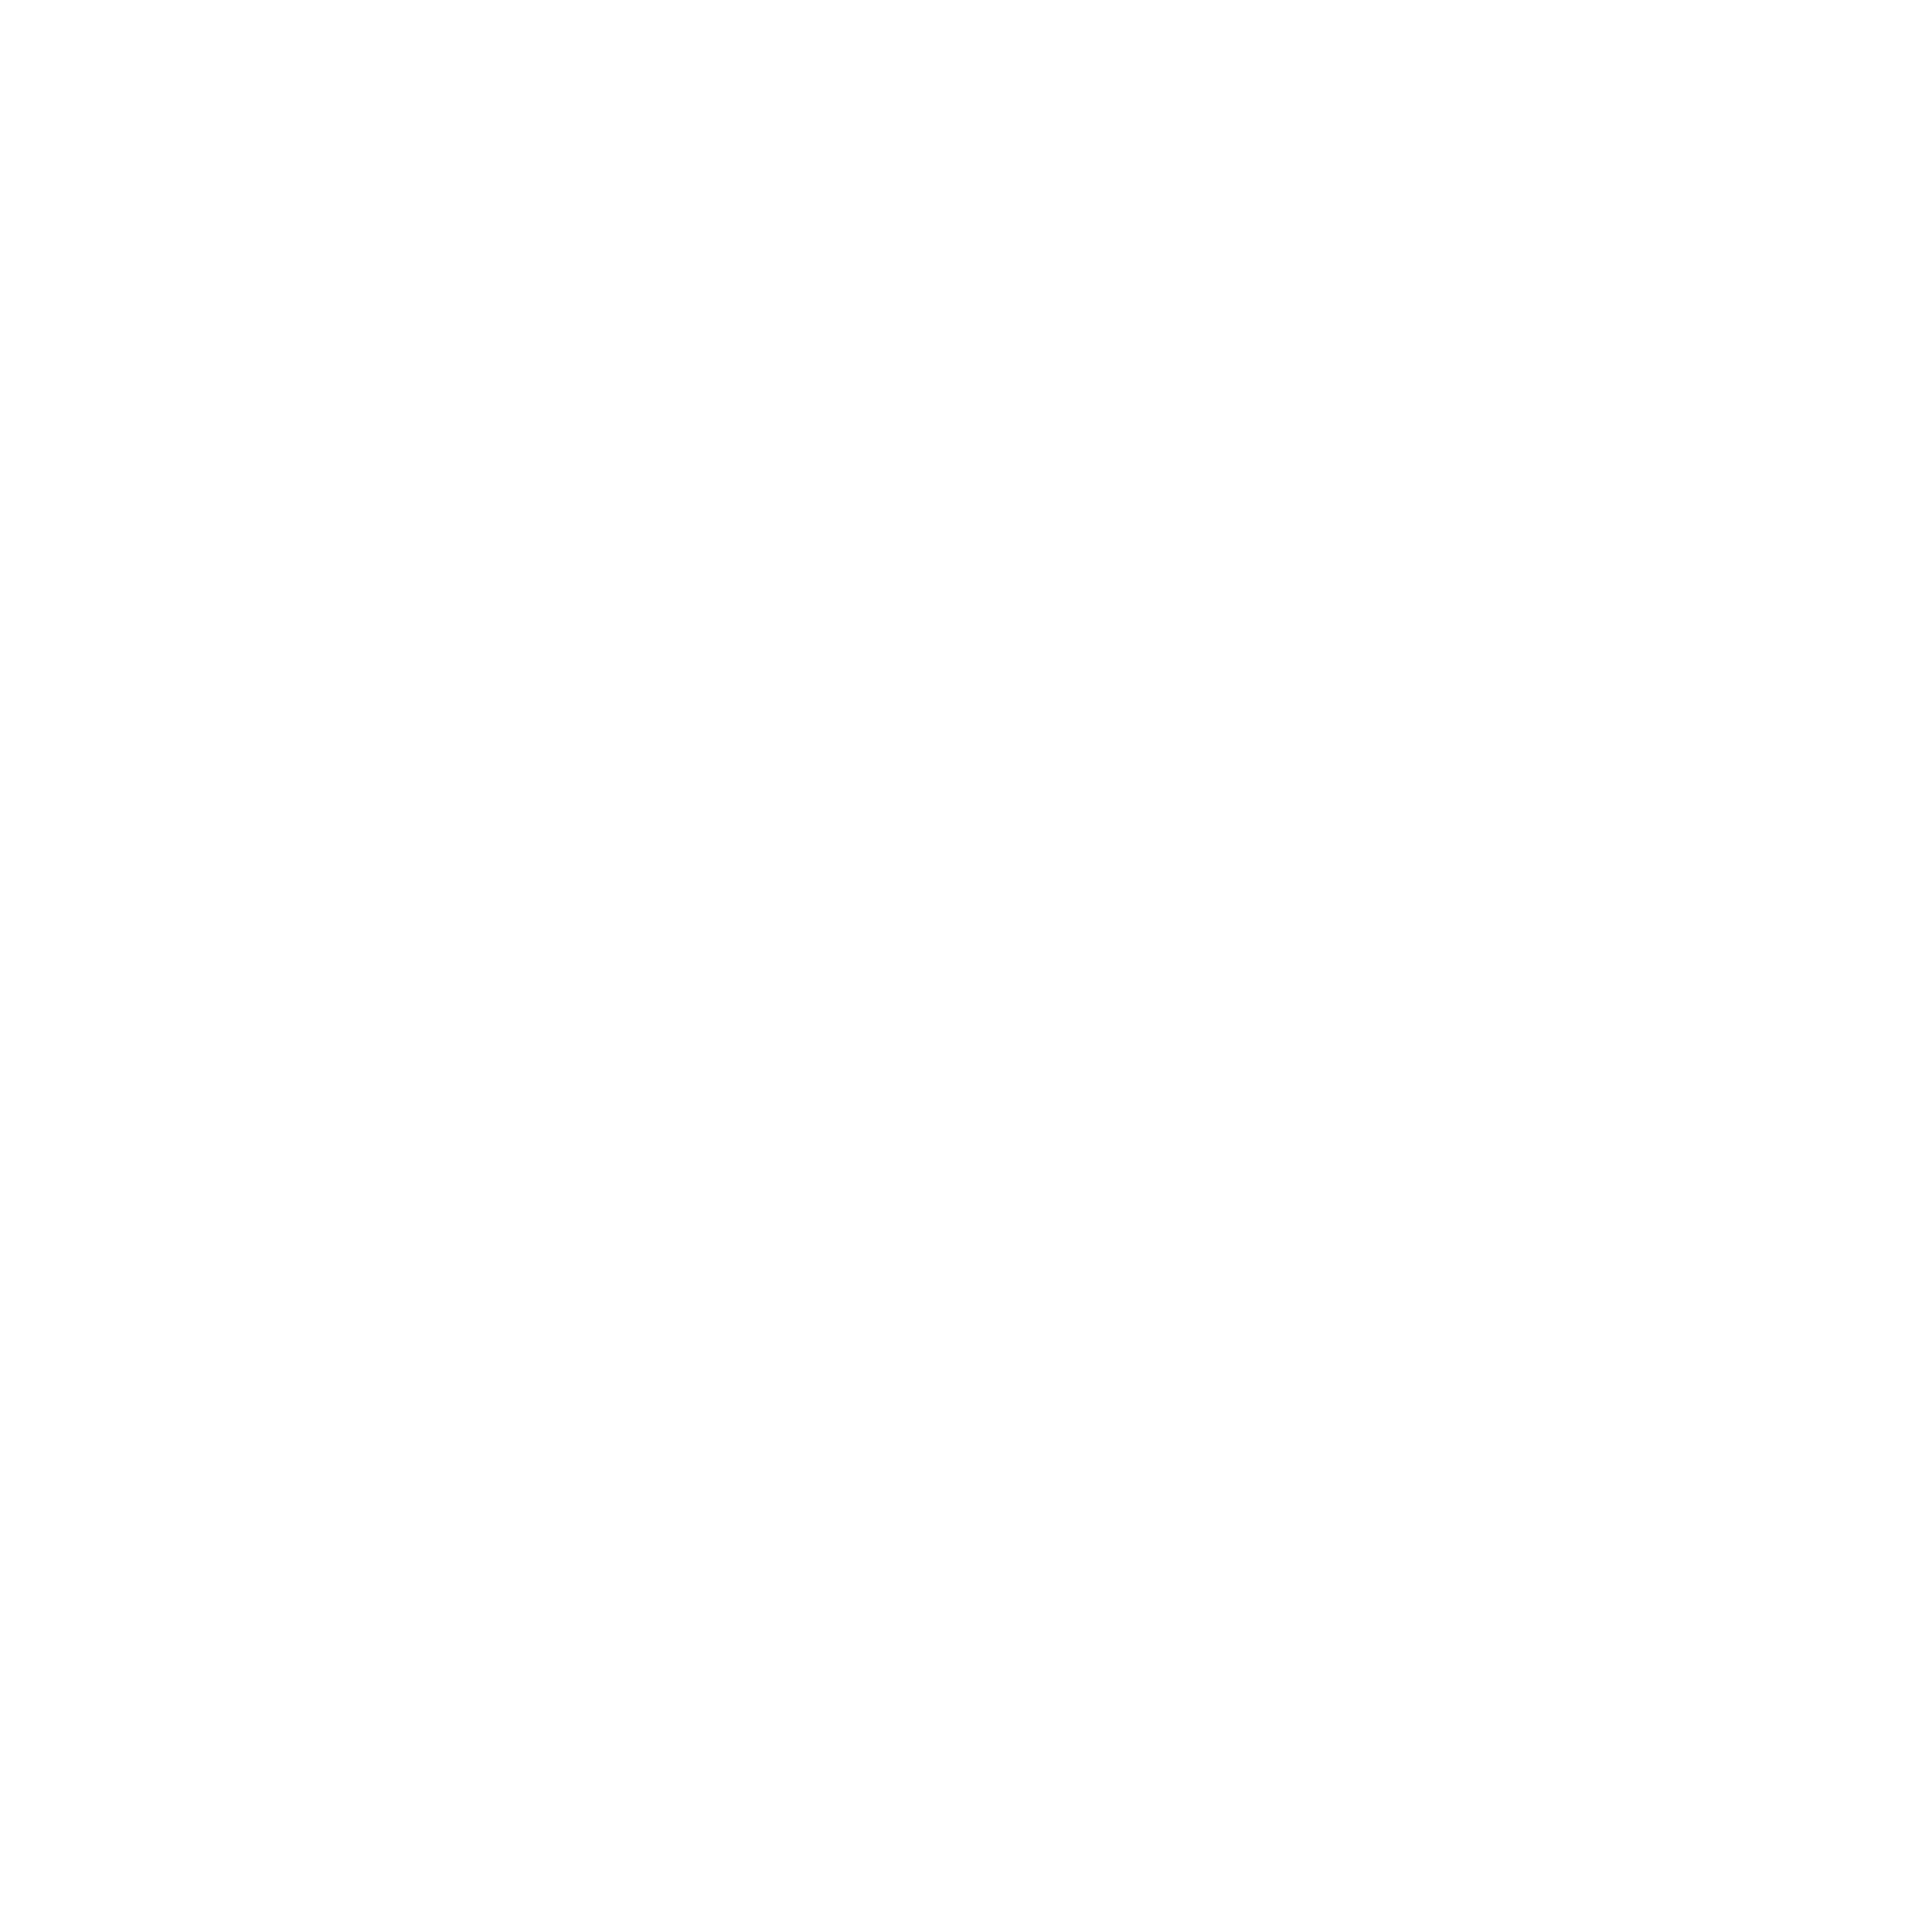 Cocokitetravel